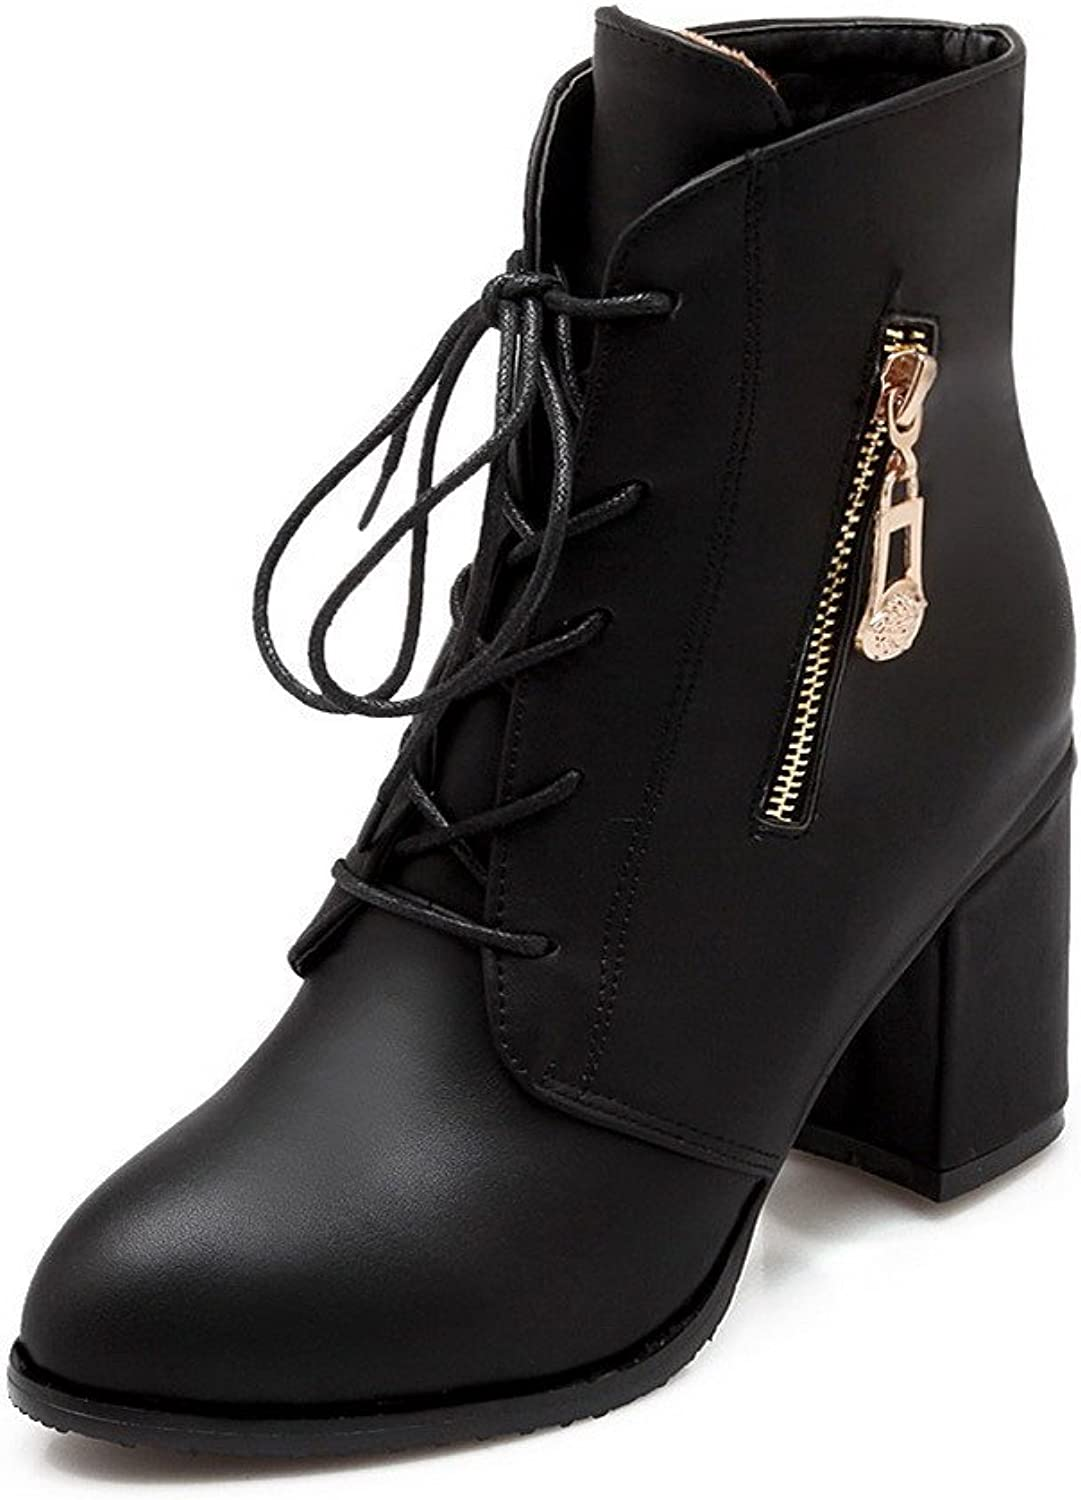 AmoonyFashion Women's Pu High Heels Round Closed Toe Solid Lace Up Boots